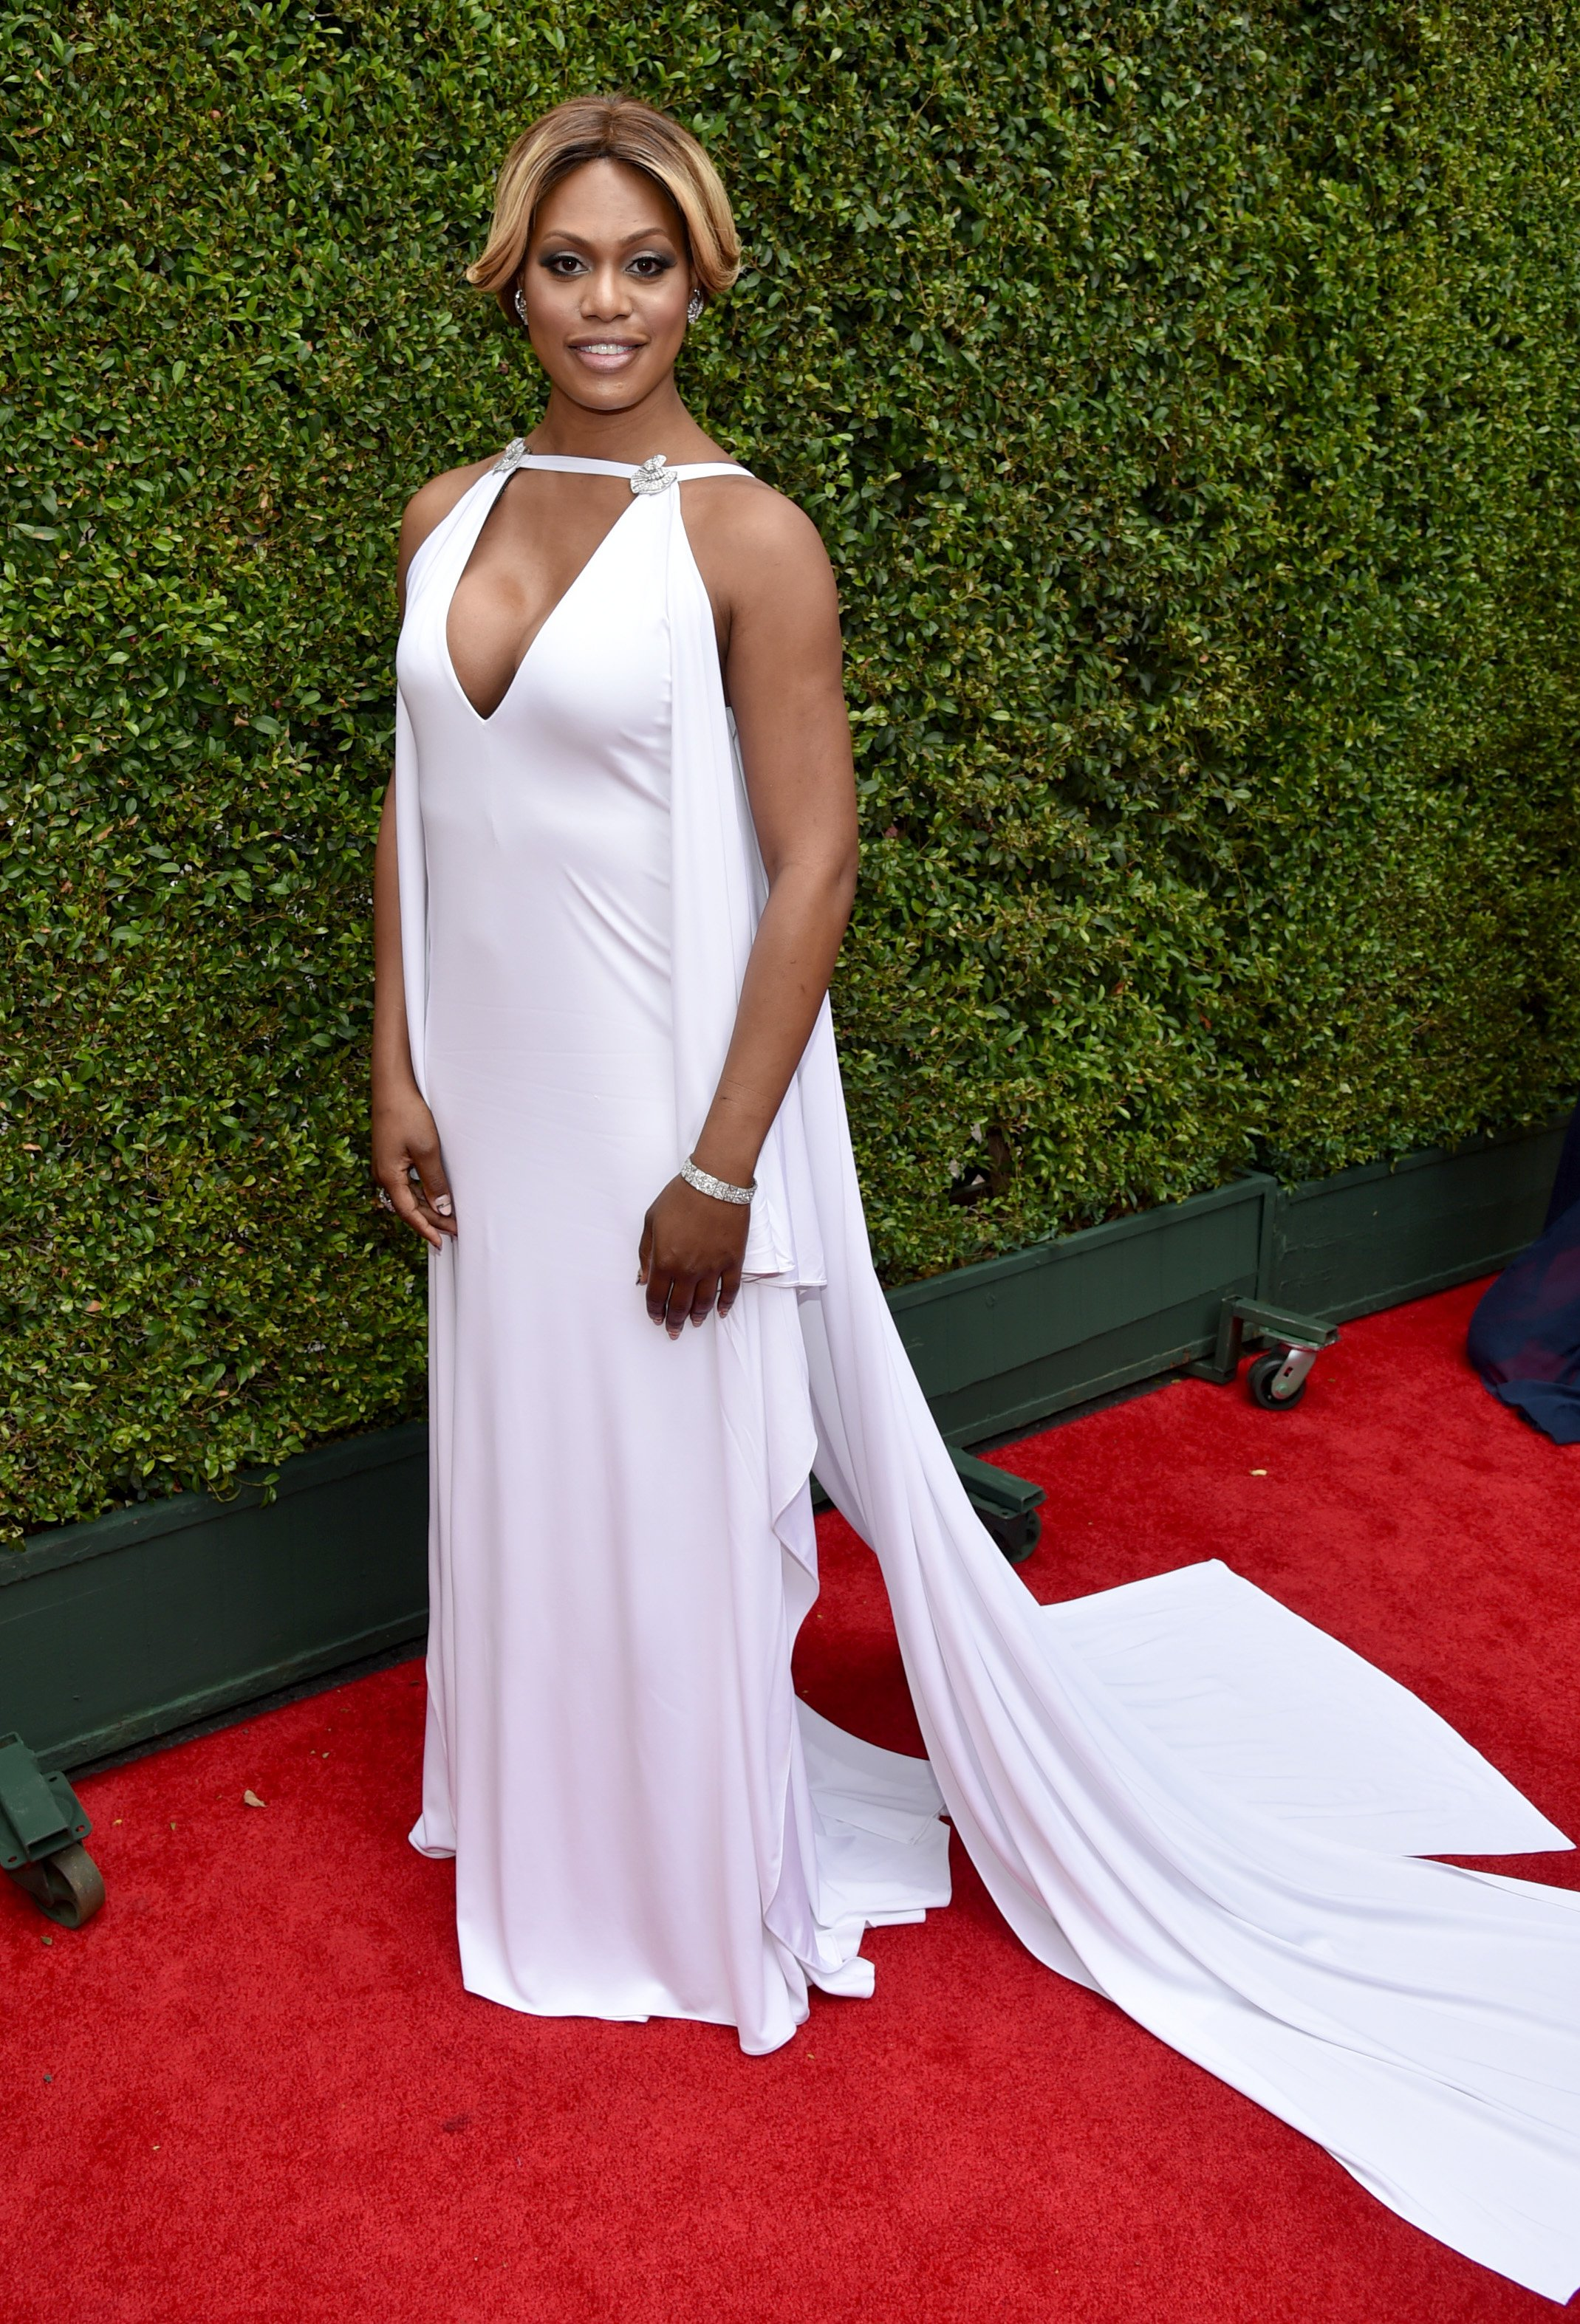 Laverne Cox arrives at the 66th Primetime Emmy Awards at the Nokia Theatre L.A. Live on Monday, Aug. 25, 2014, in Los Angeles.